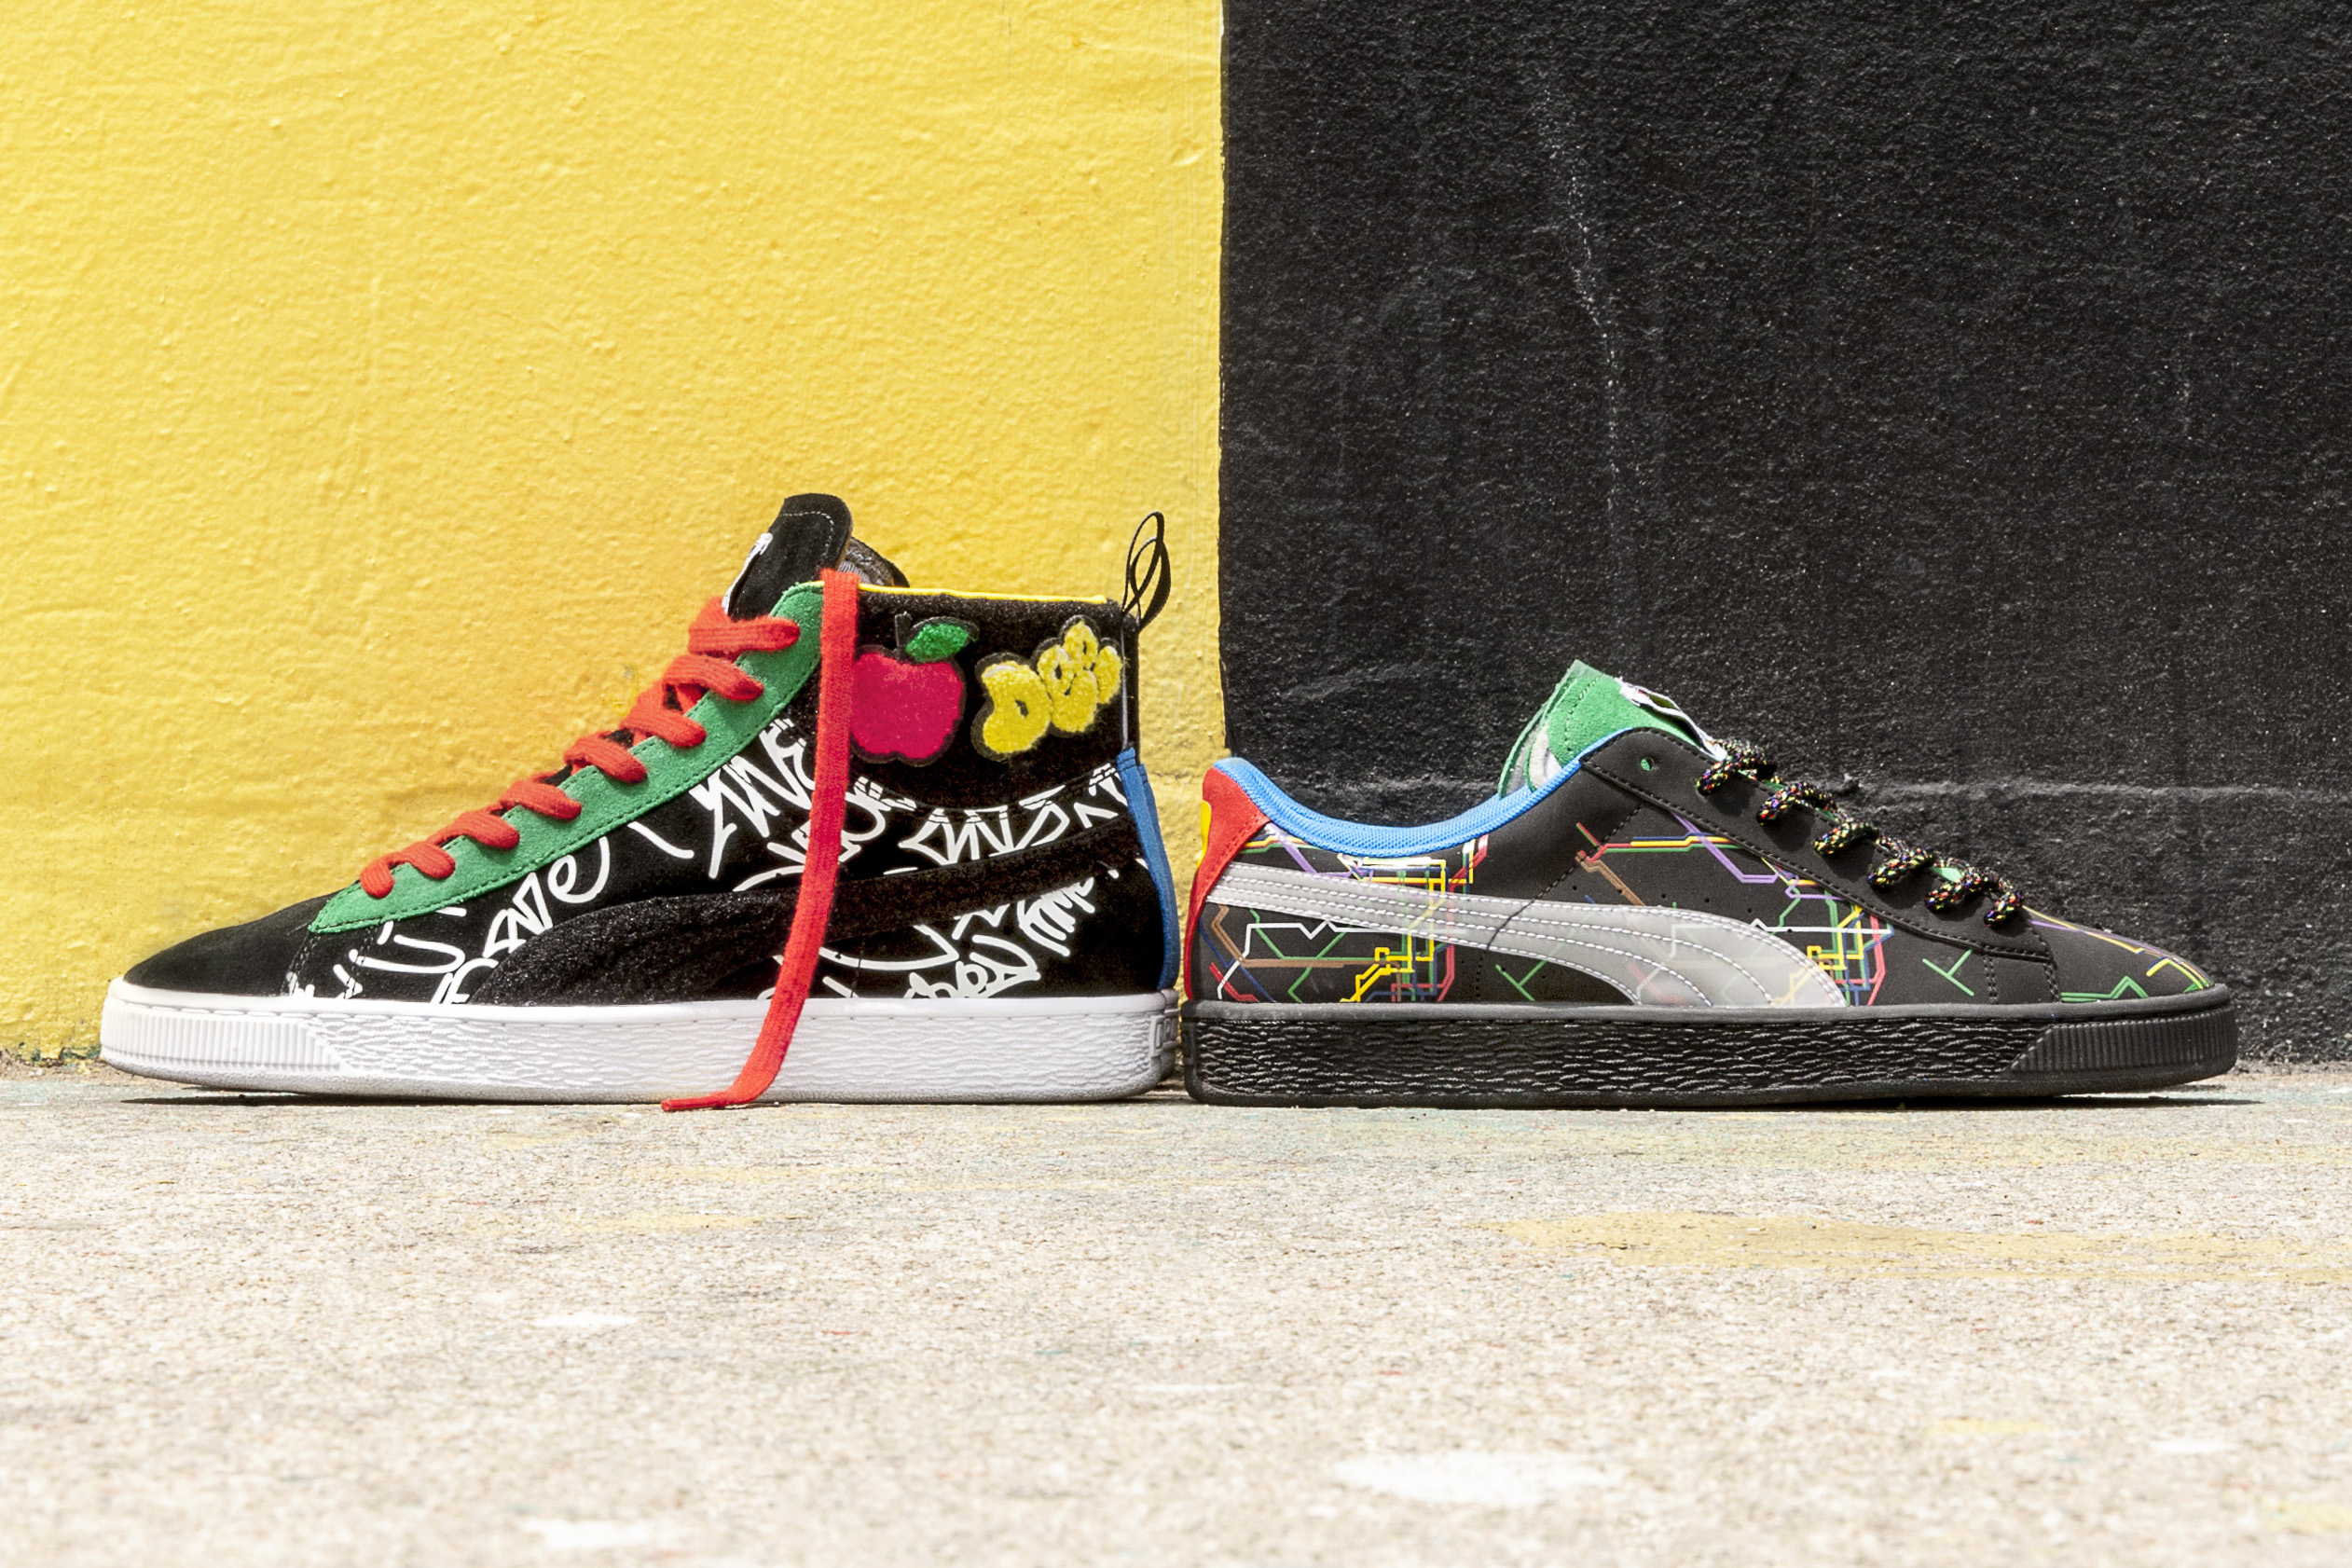 Dee & Ricky Team up With PUMA for a NYC-Inspired Collection